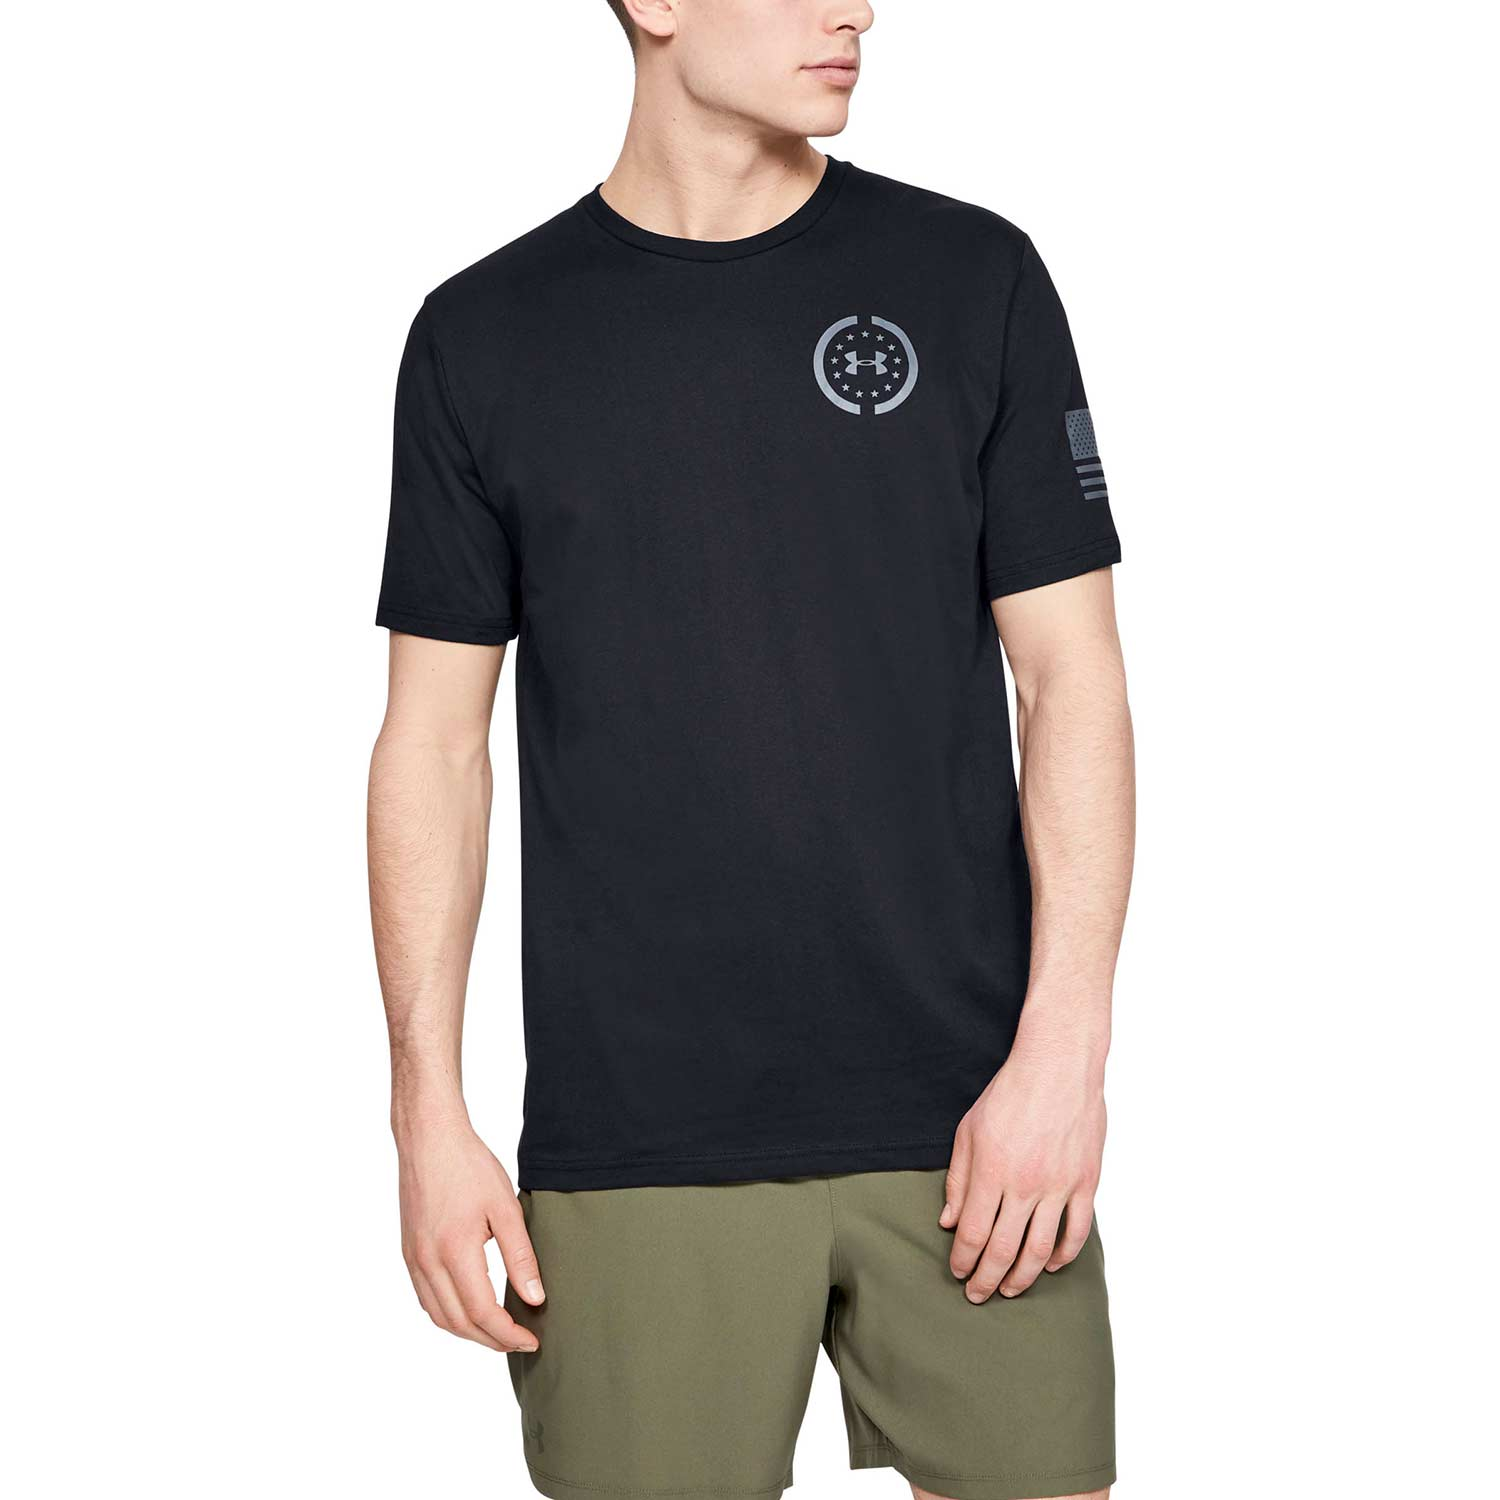 Under Armour Mission Made Snake Graphic T-Shirt